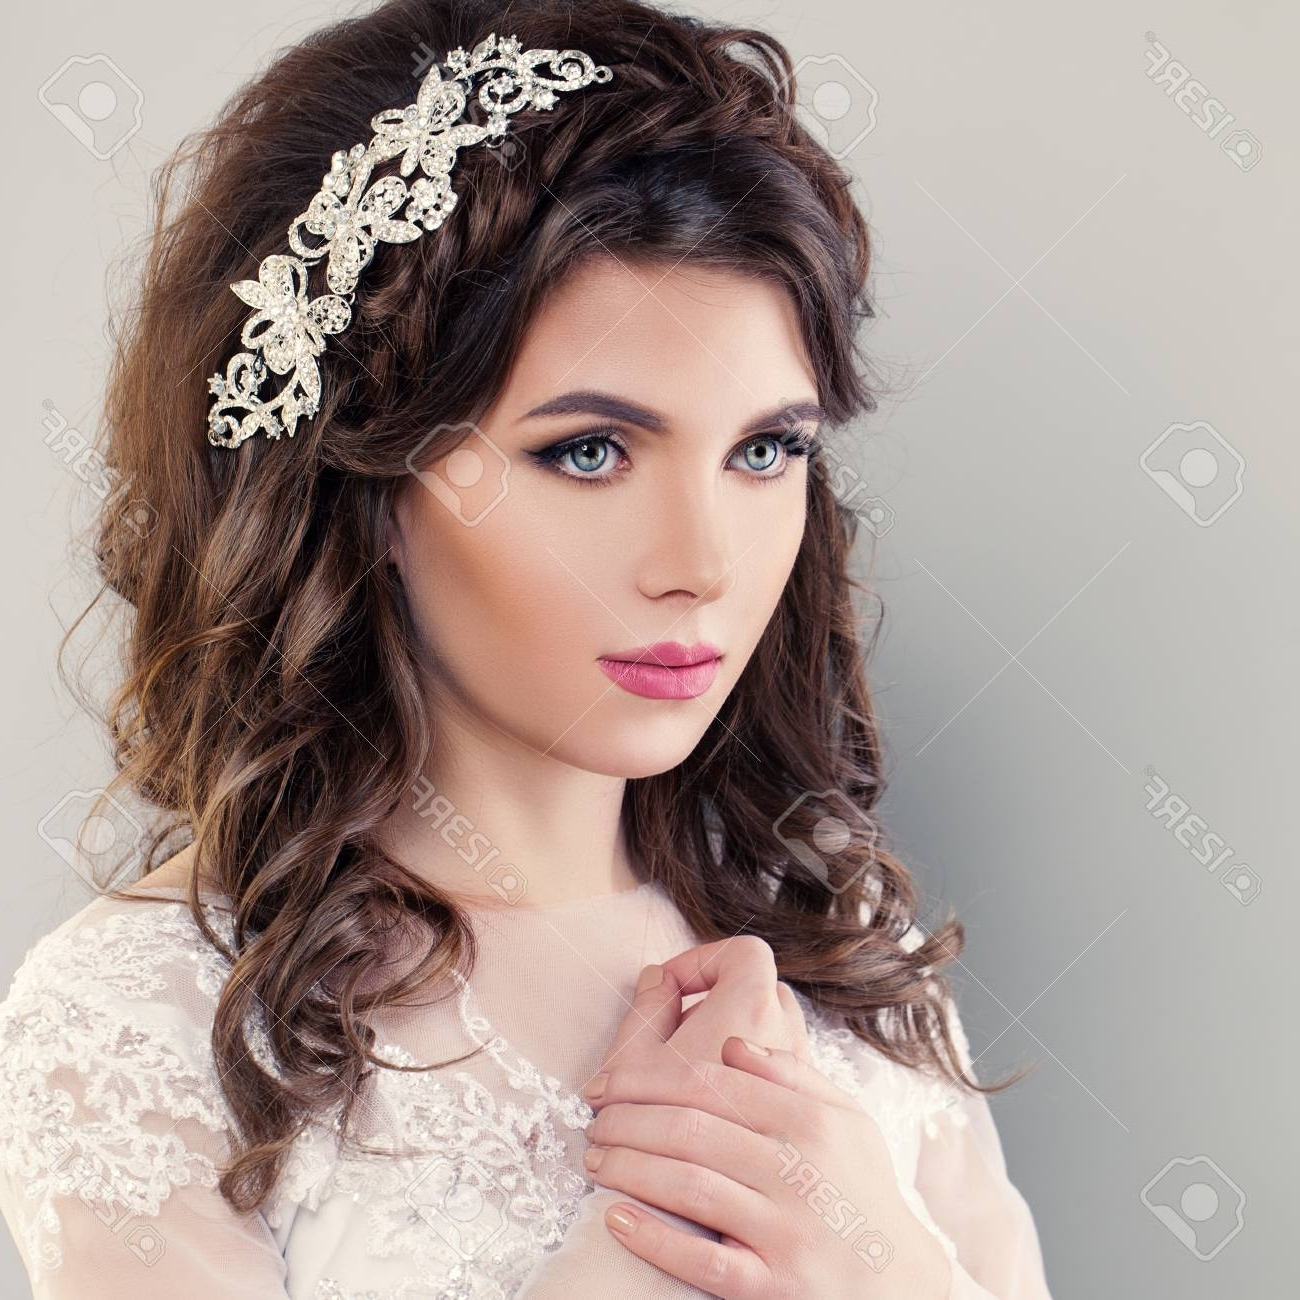 Current Wedding Hairstyles For Young Brides For Beauty Fashion Portrait Of Young Bride With Wedding Hairstyle (View 11 of 15)